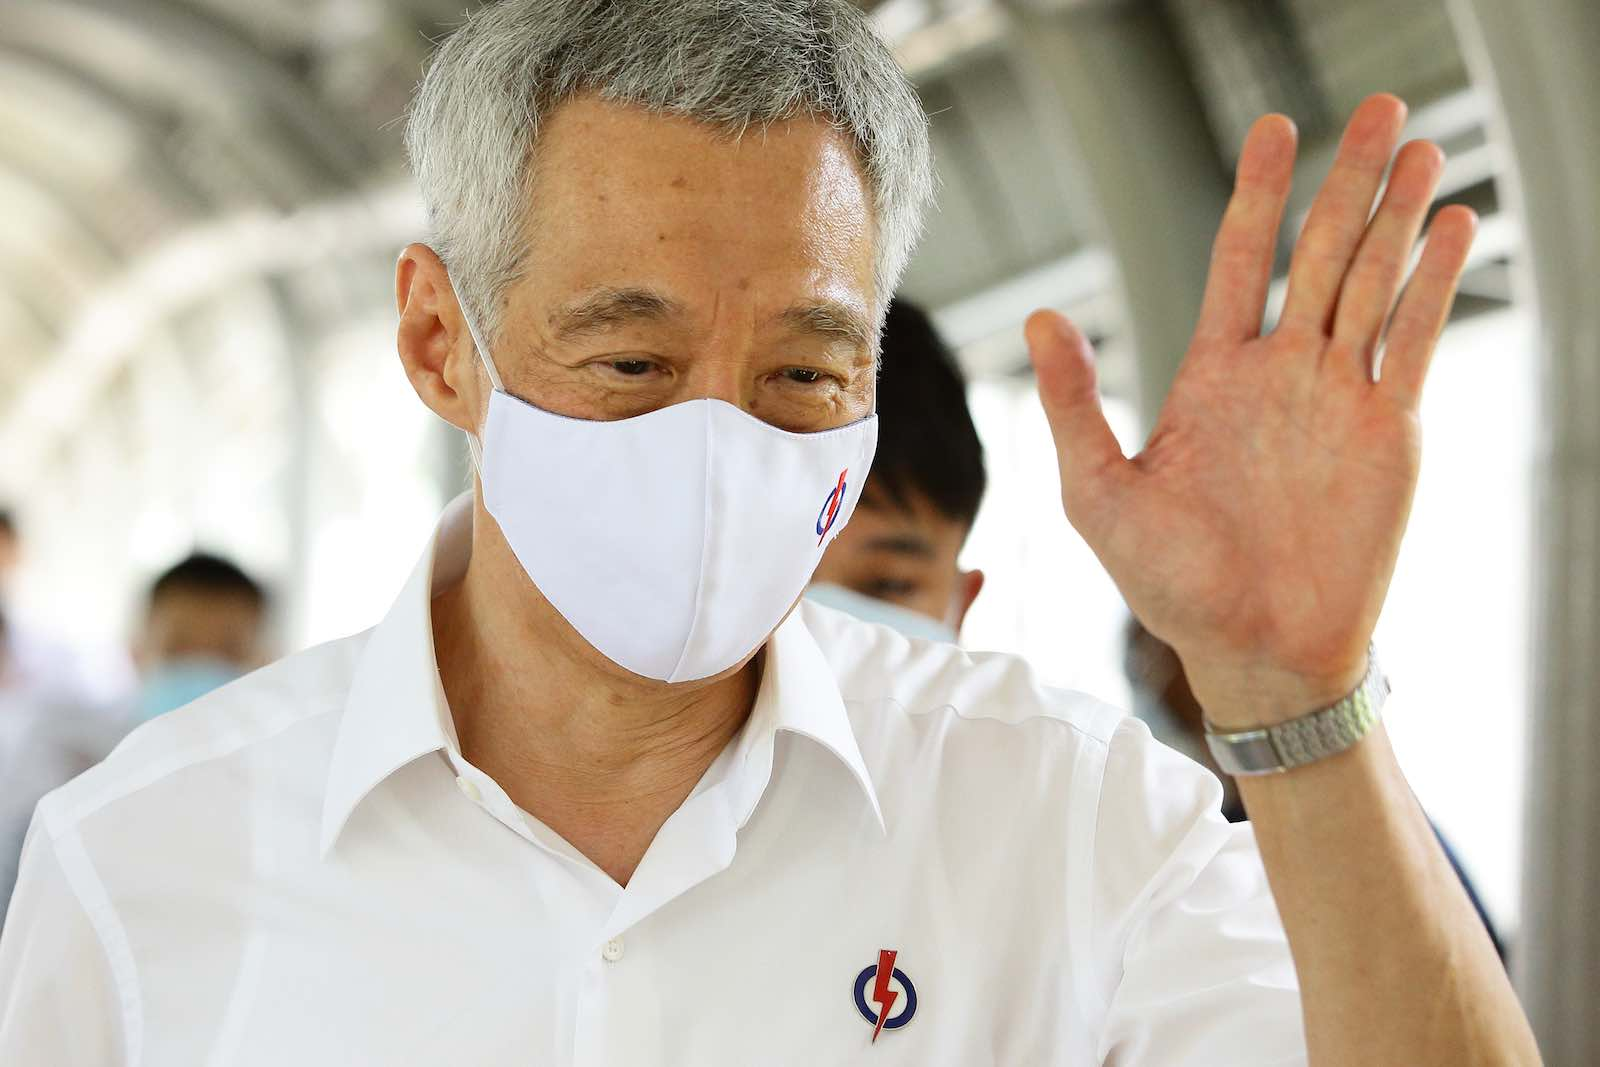 People's Action Party Secretary-General and Singapore's Prime Minister Lee Hsien Loong during the campaign (Suhaimi Abdullah/Getty Images)